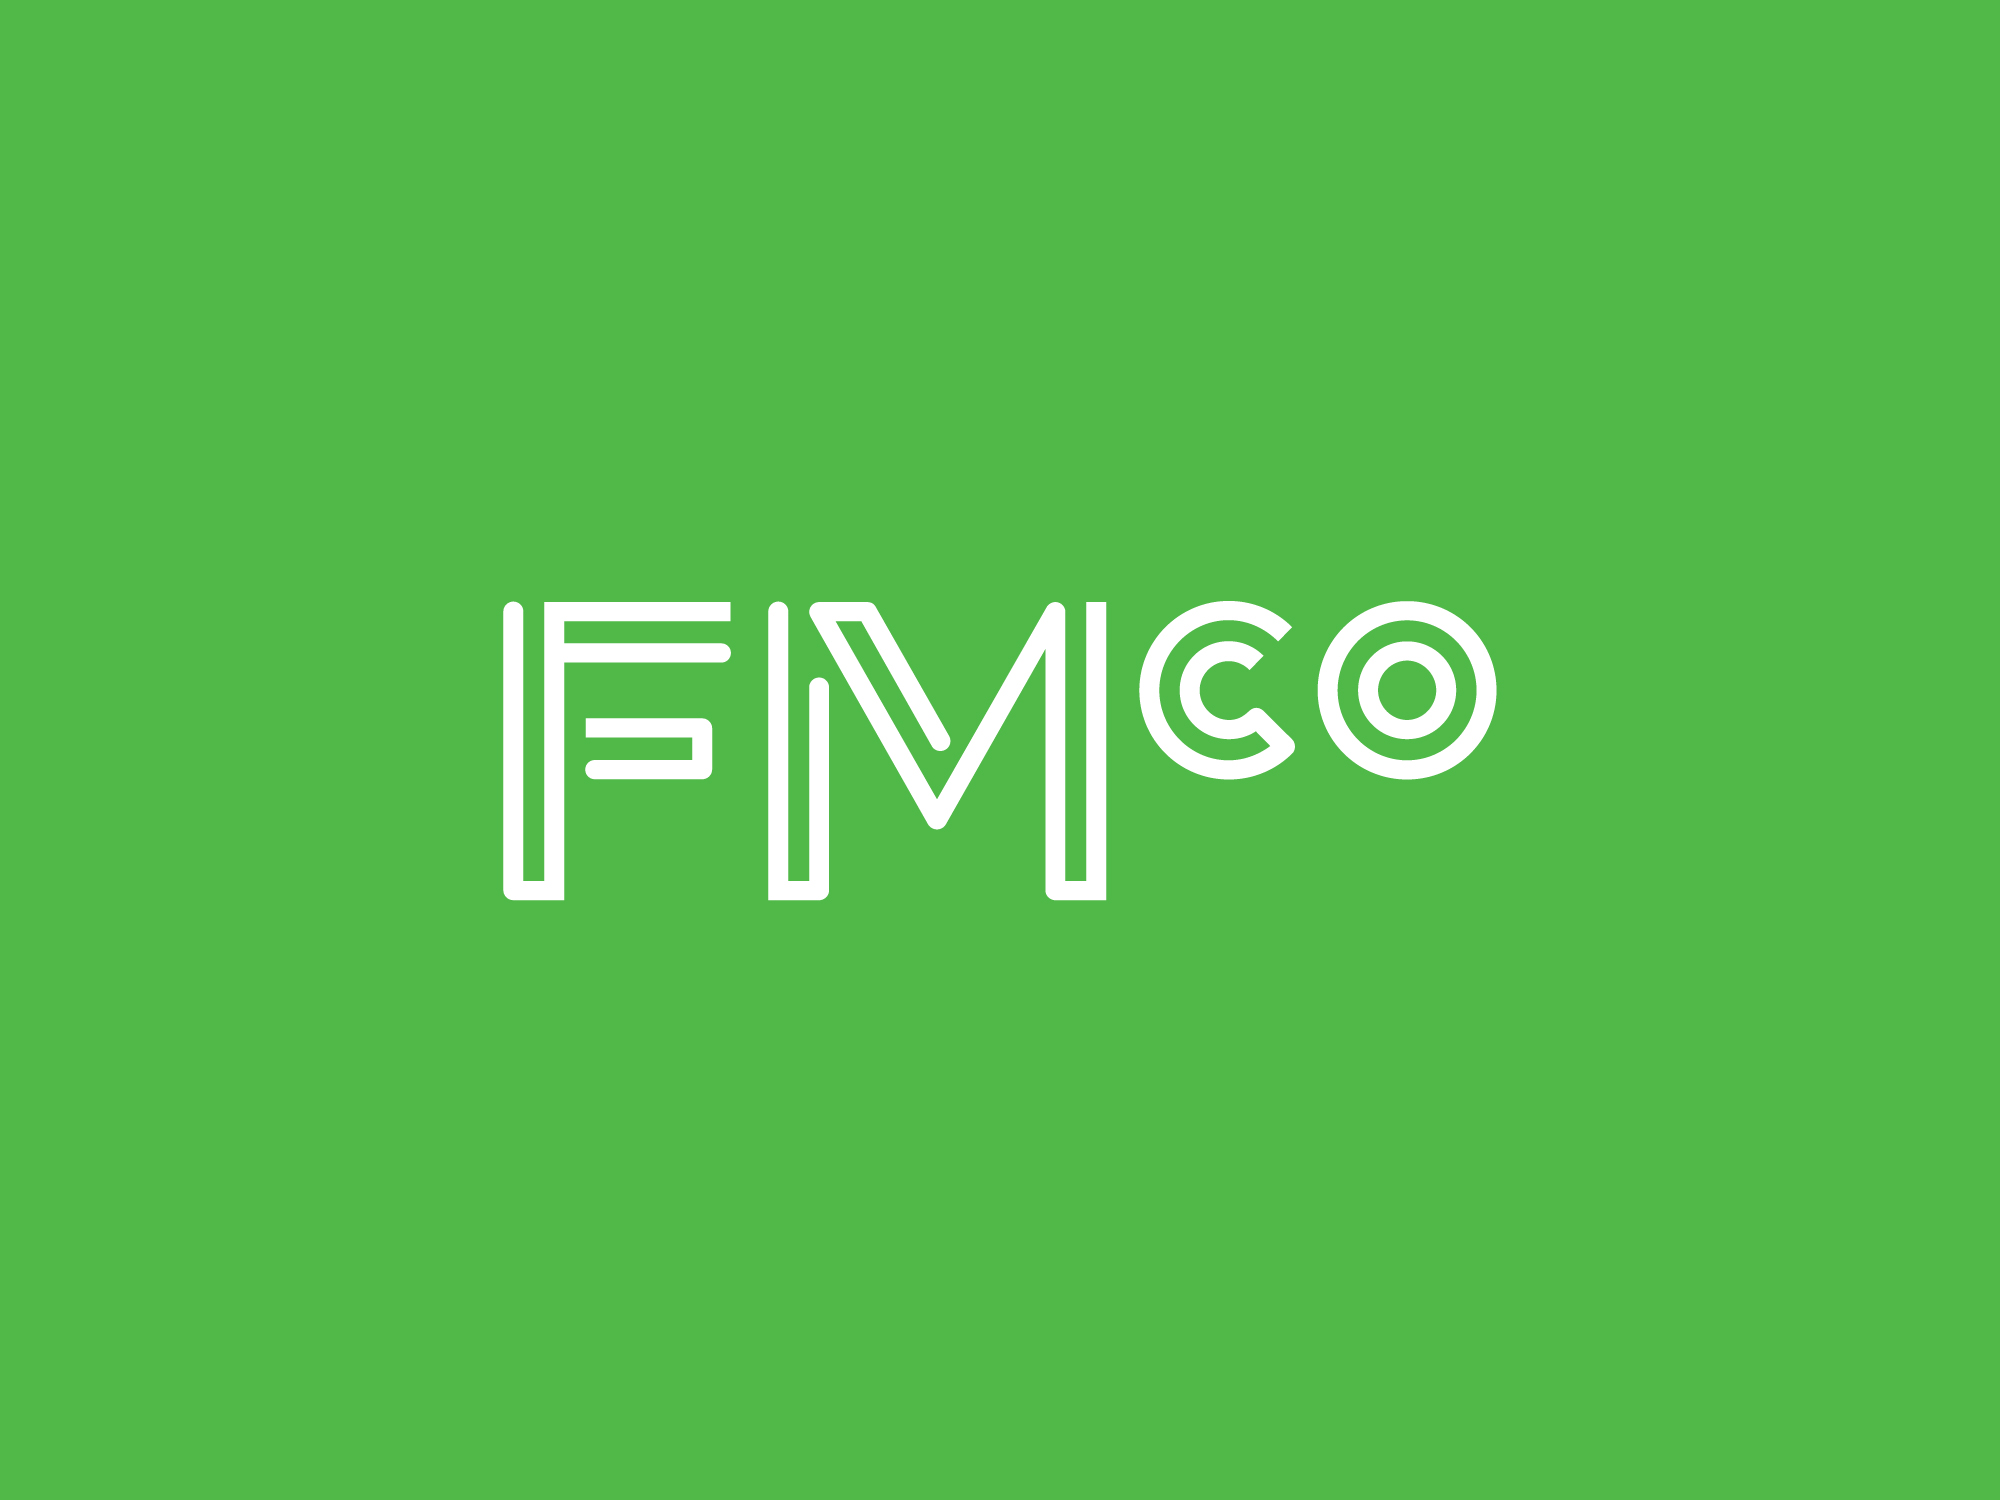 Cover image: FMco